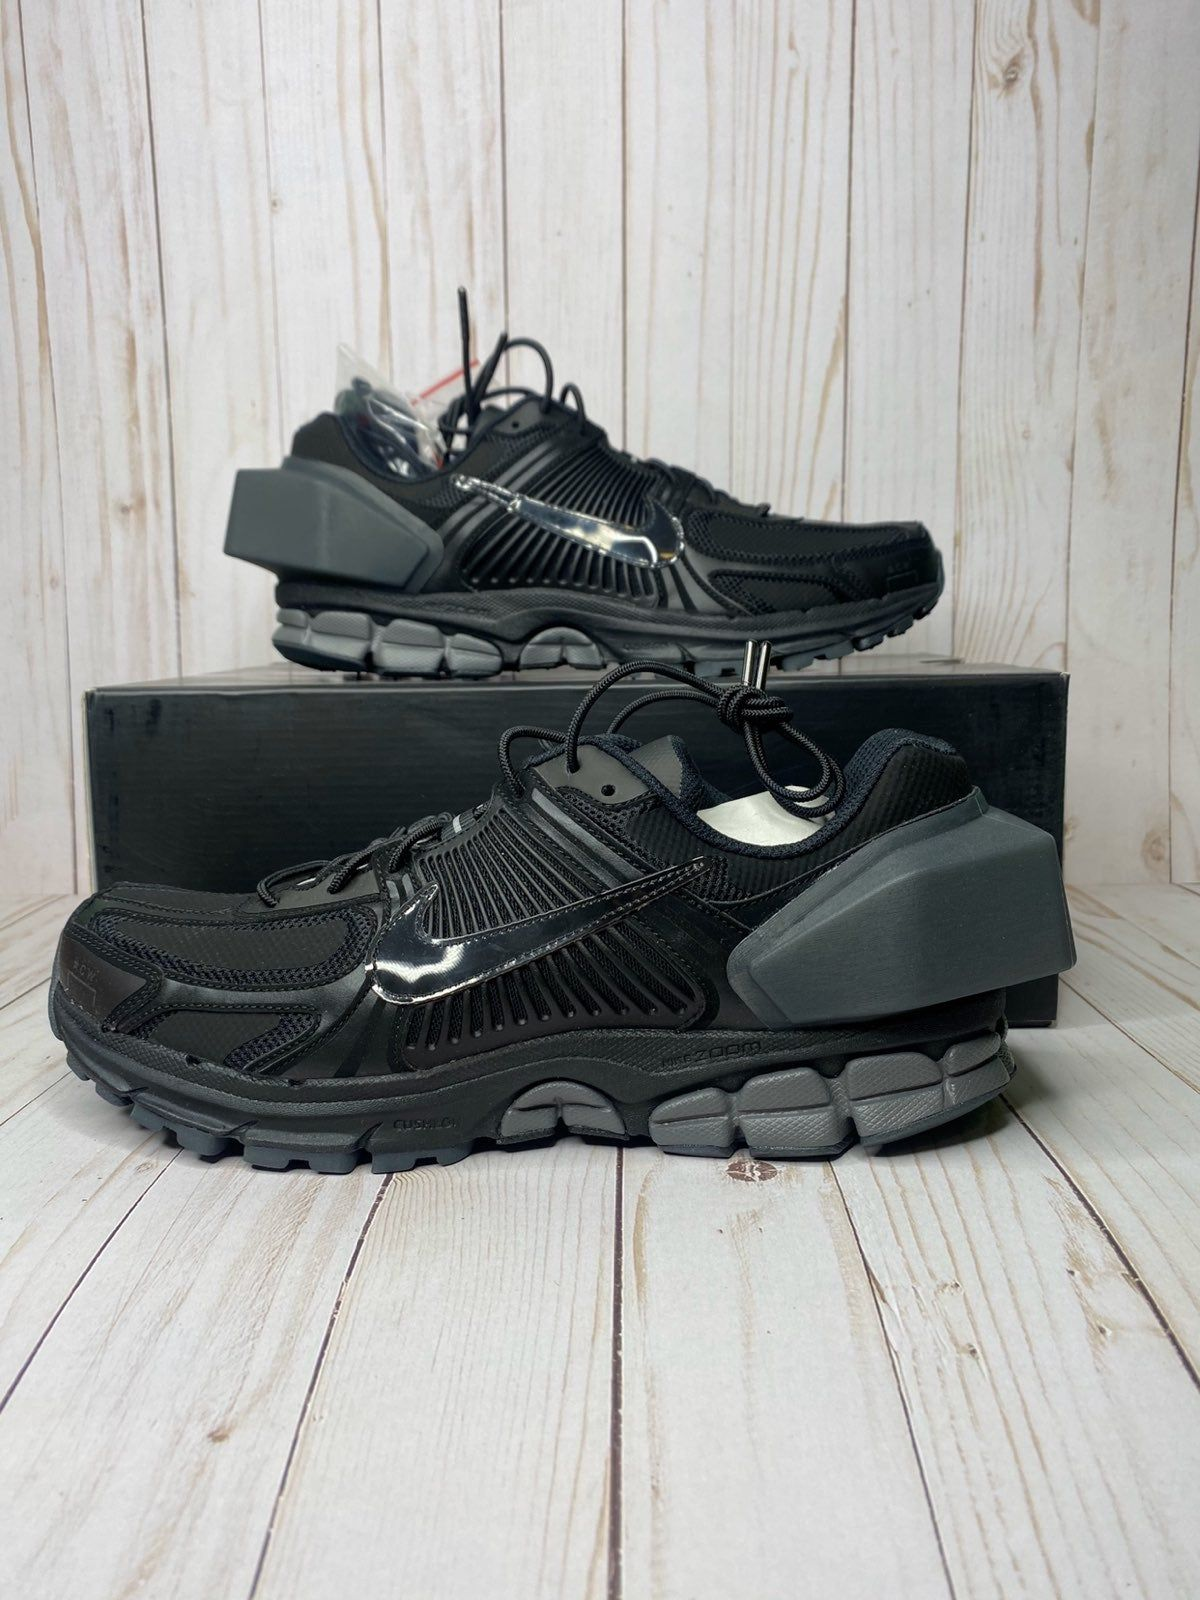 Nike Zoom Vomero 5 ACW A Cold Wall